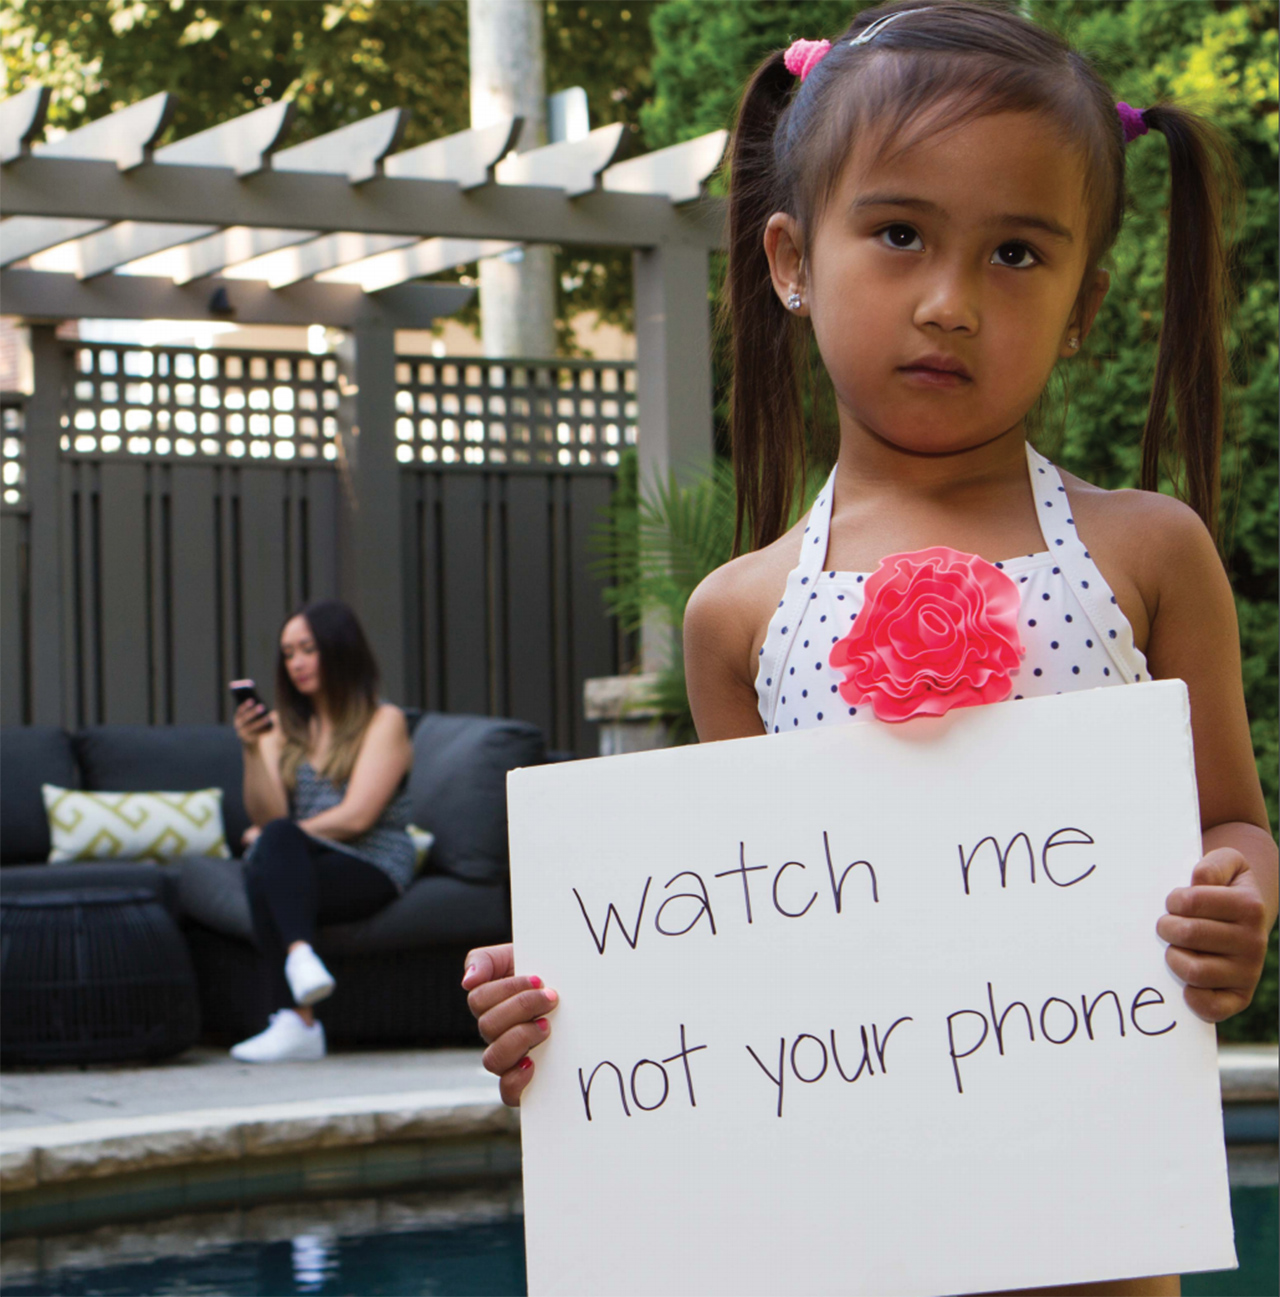 little girl in a bathing suit holding a sign that says 'watch me not your phone' while her mom looks at her phone in the background